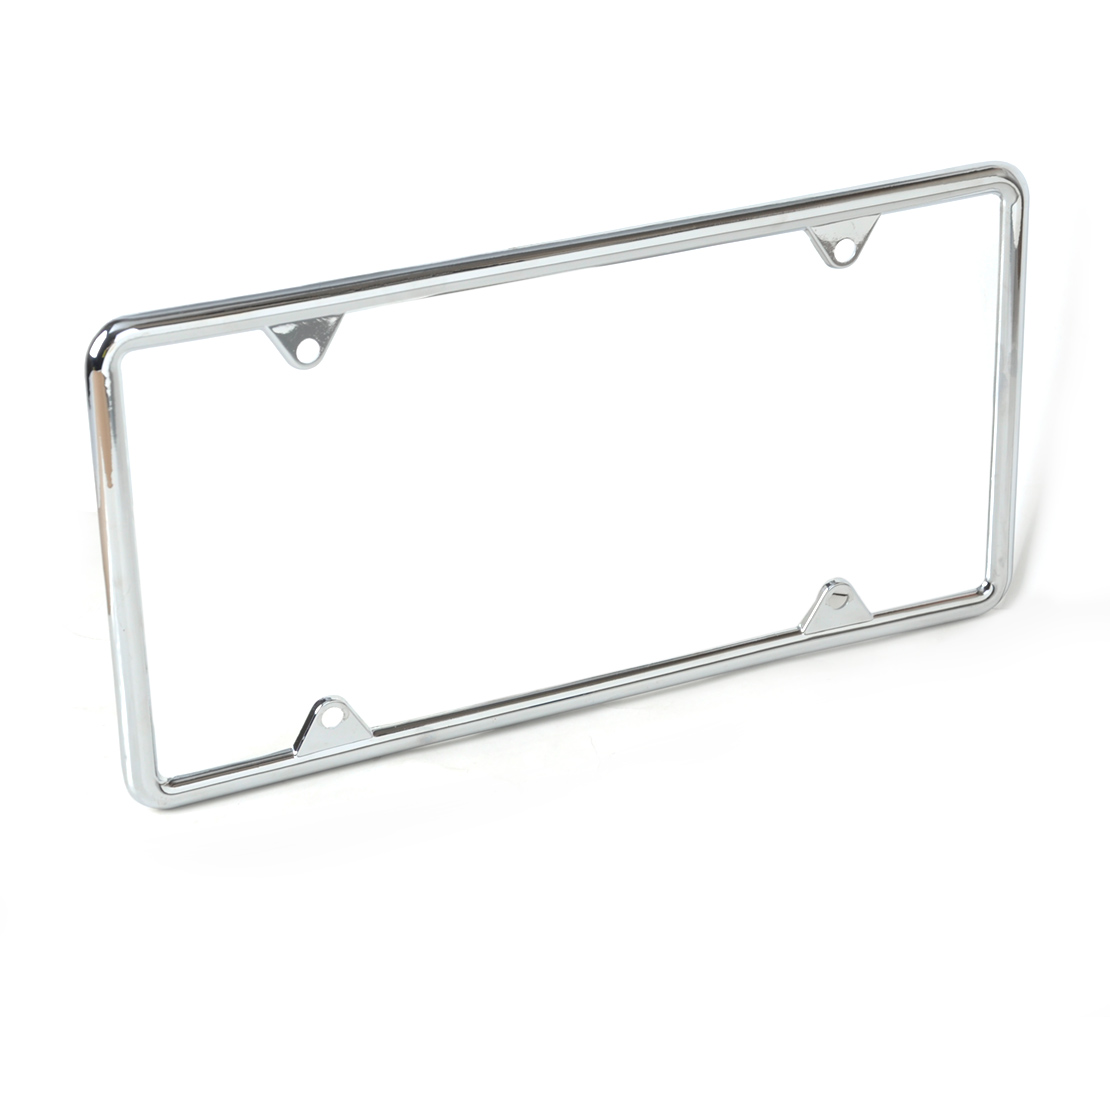 New zinc alloy license plate frame universal for mercedes for License plate frames mercedes benz